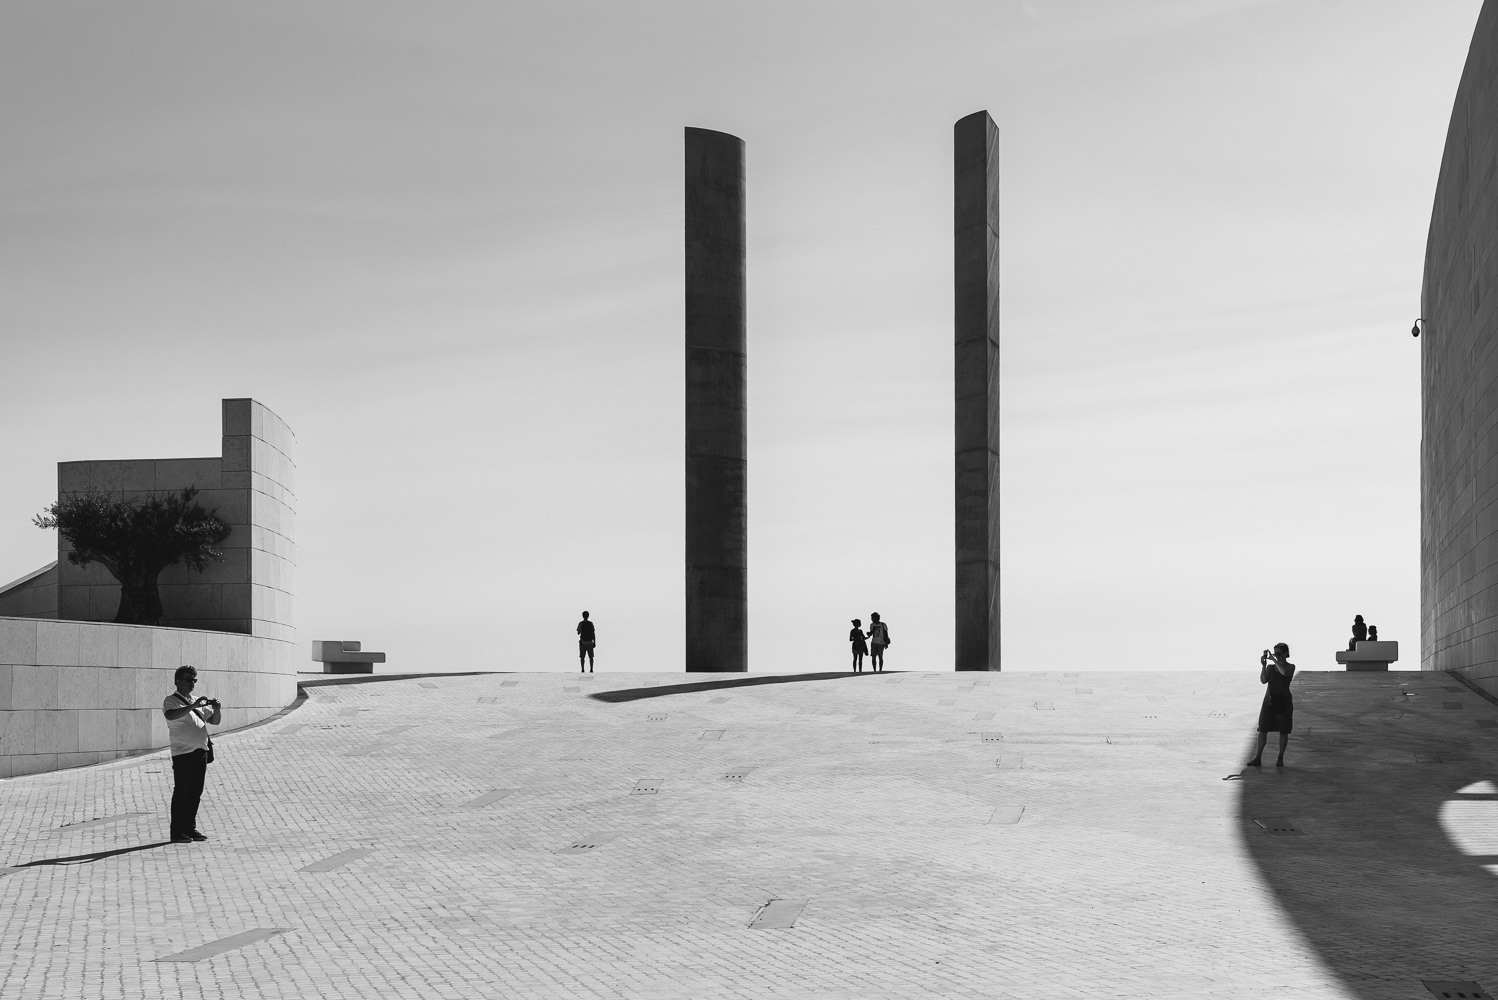 dacian-groza-concrete-black-and-white-architectural-photography-01-0393.jpg